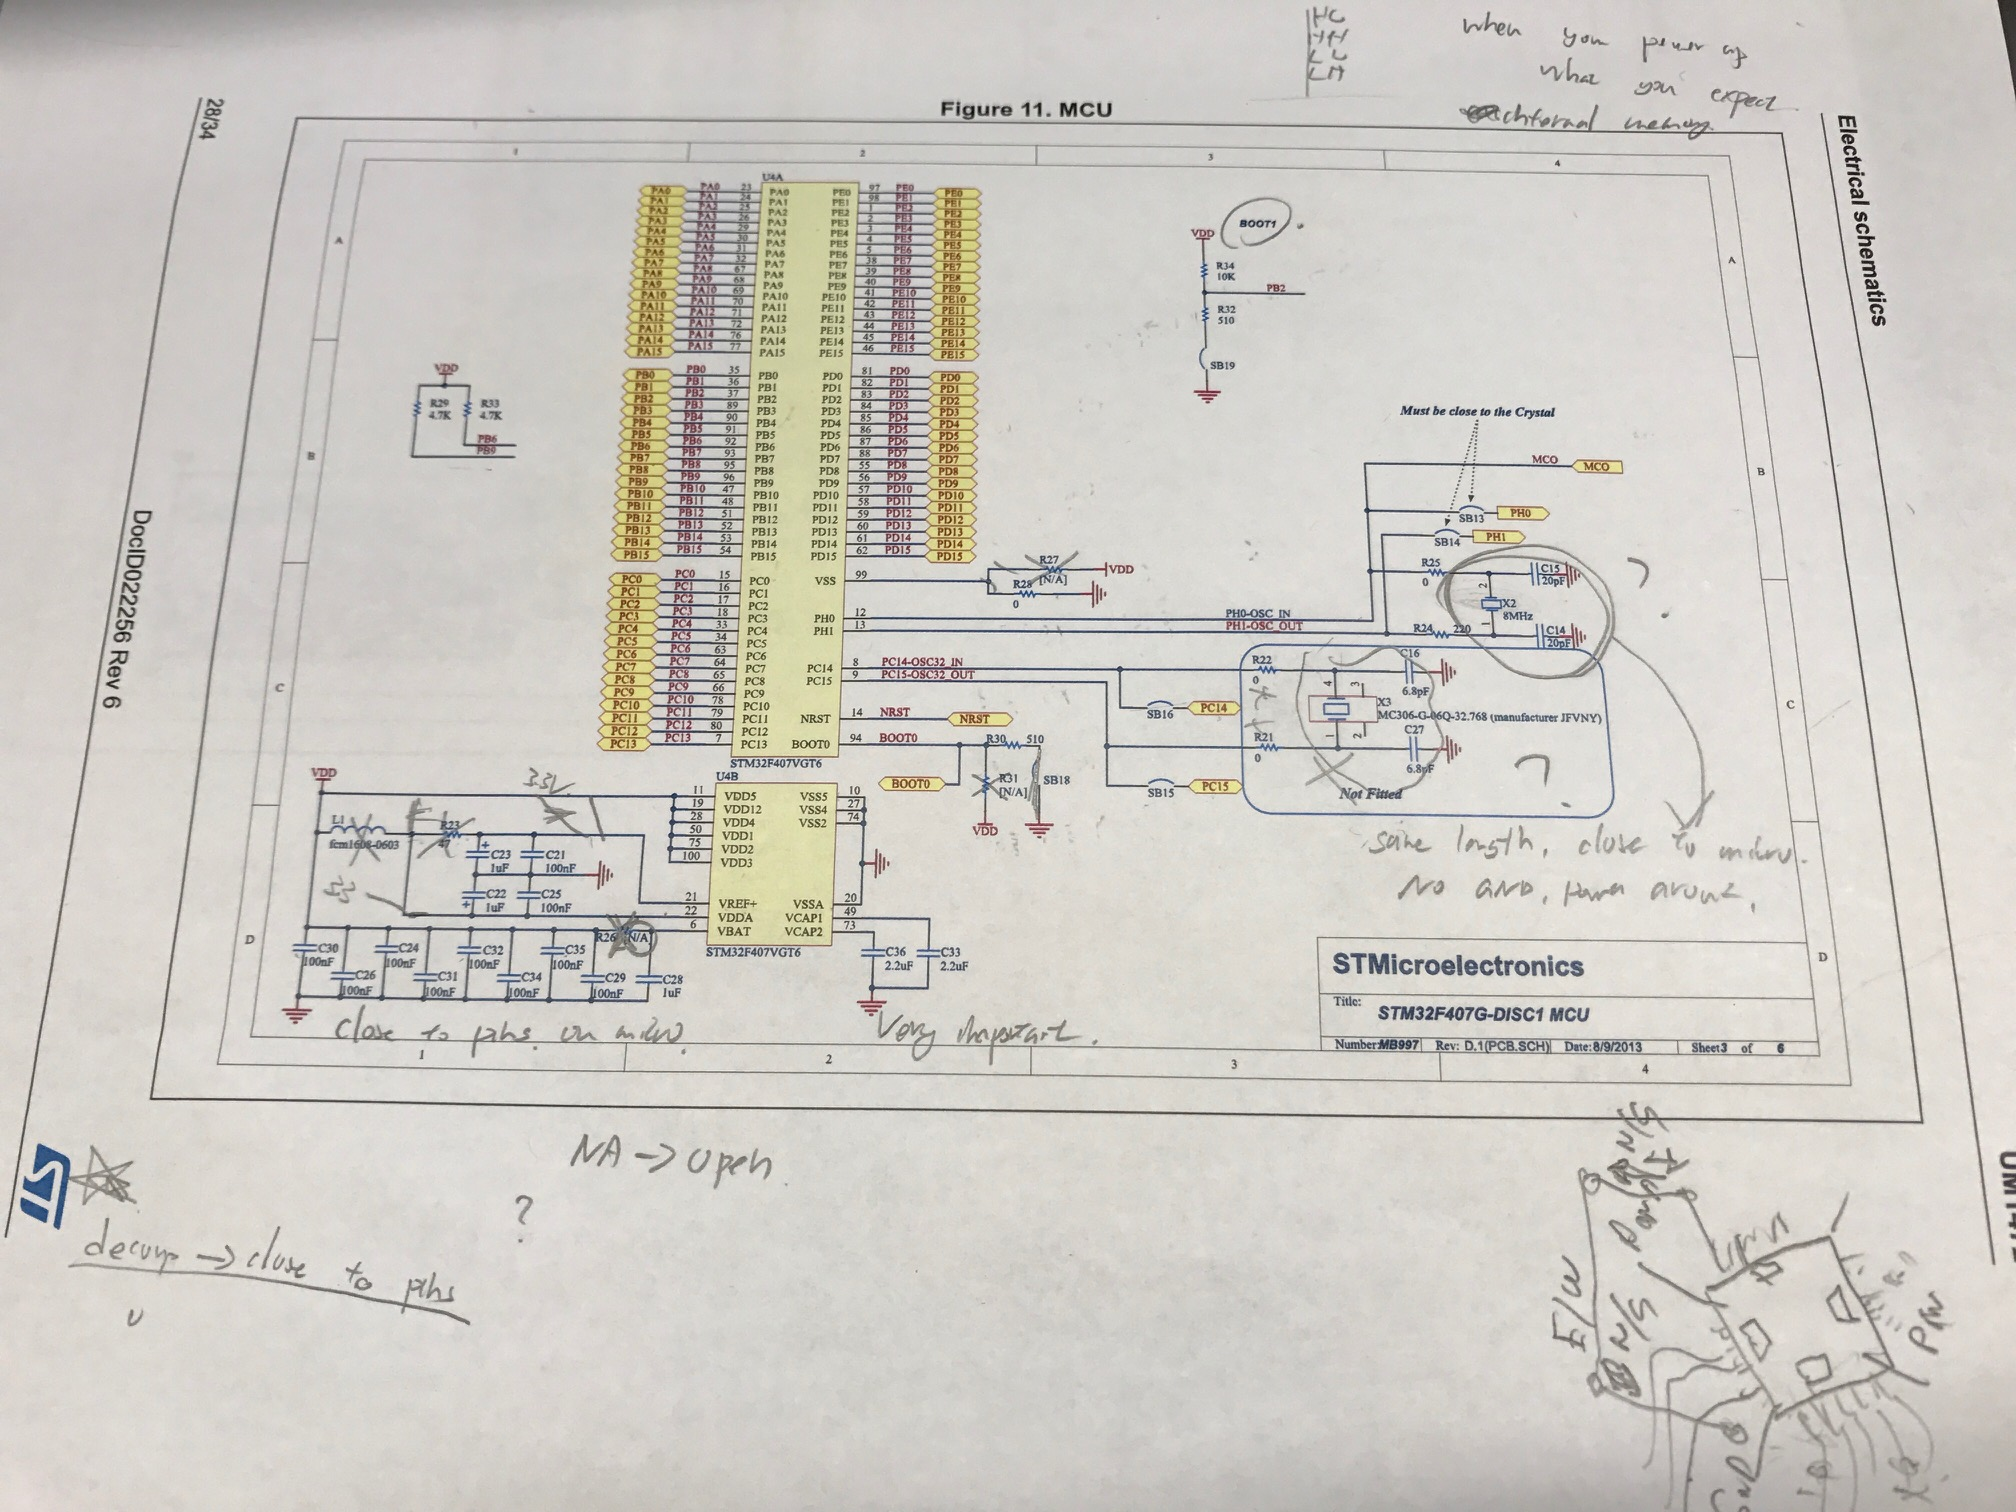 Ece477 Course Documents Ipad 2 Logic Board Diagram Figure 6 Taking Notes On The Schematic